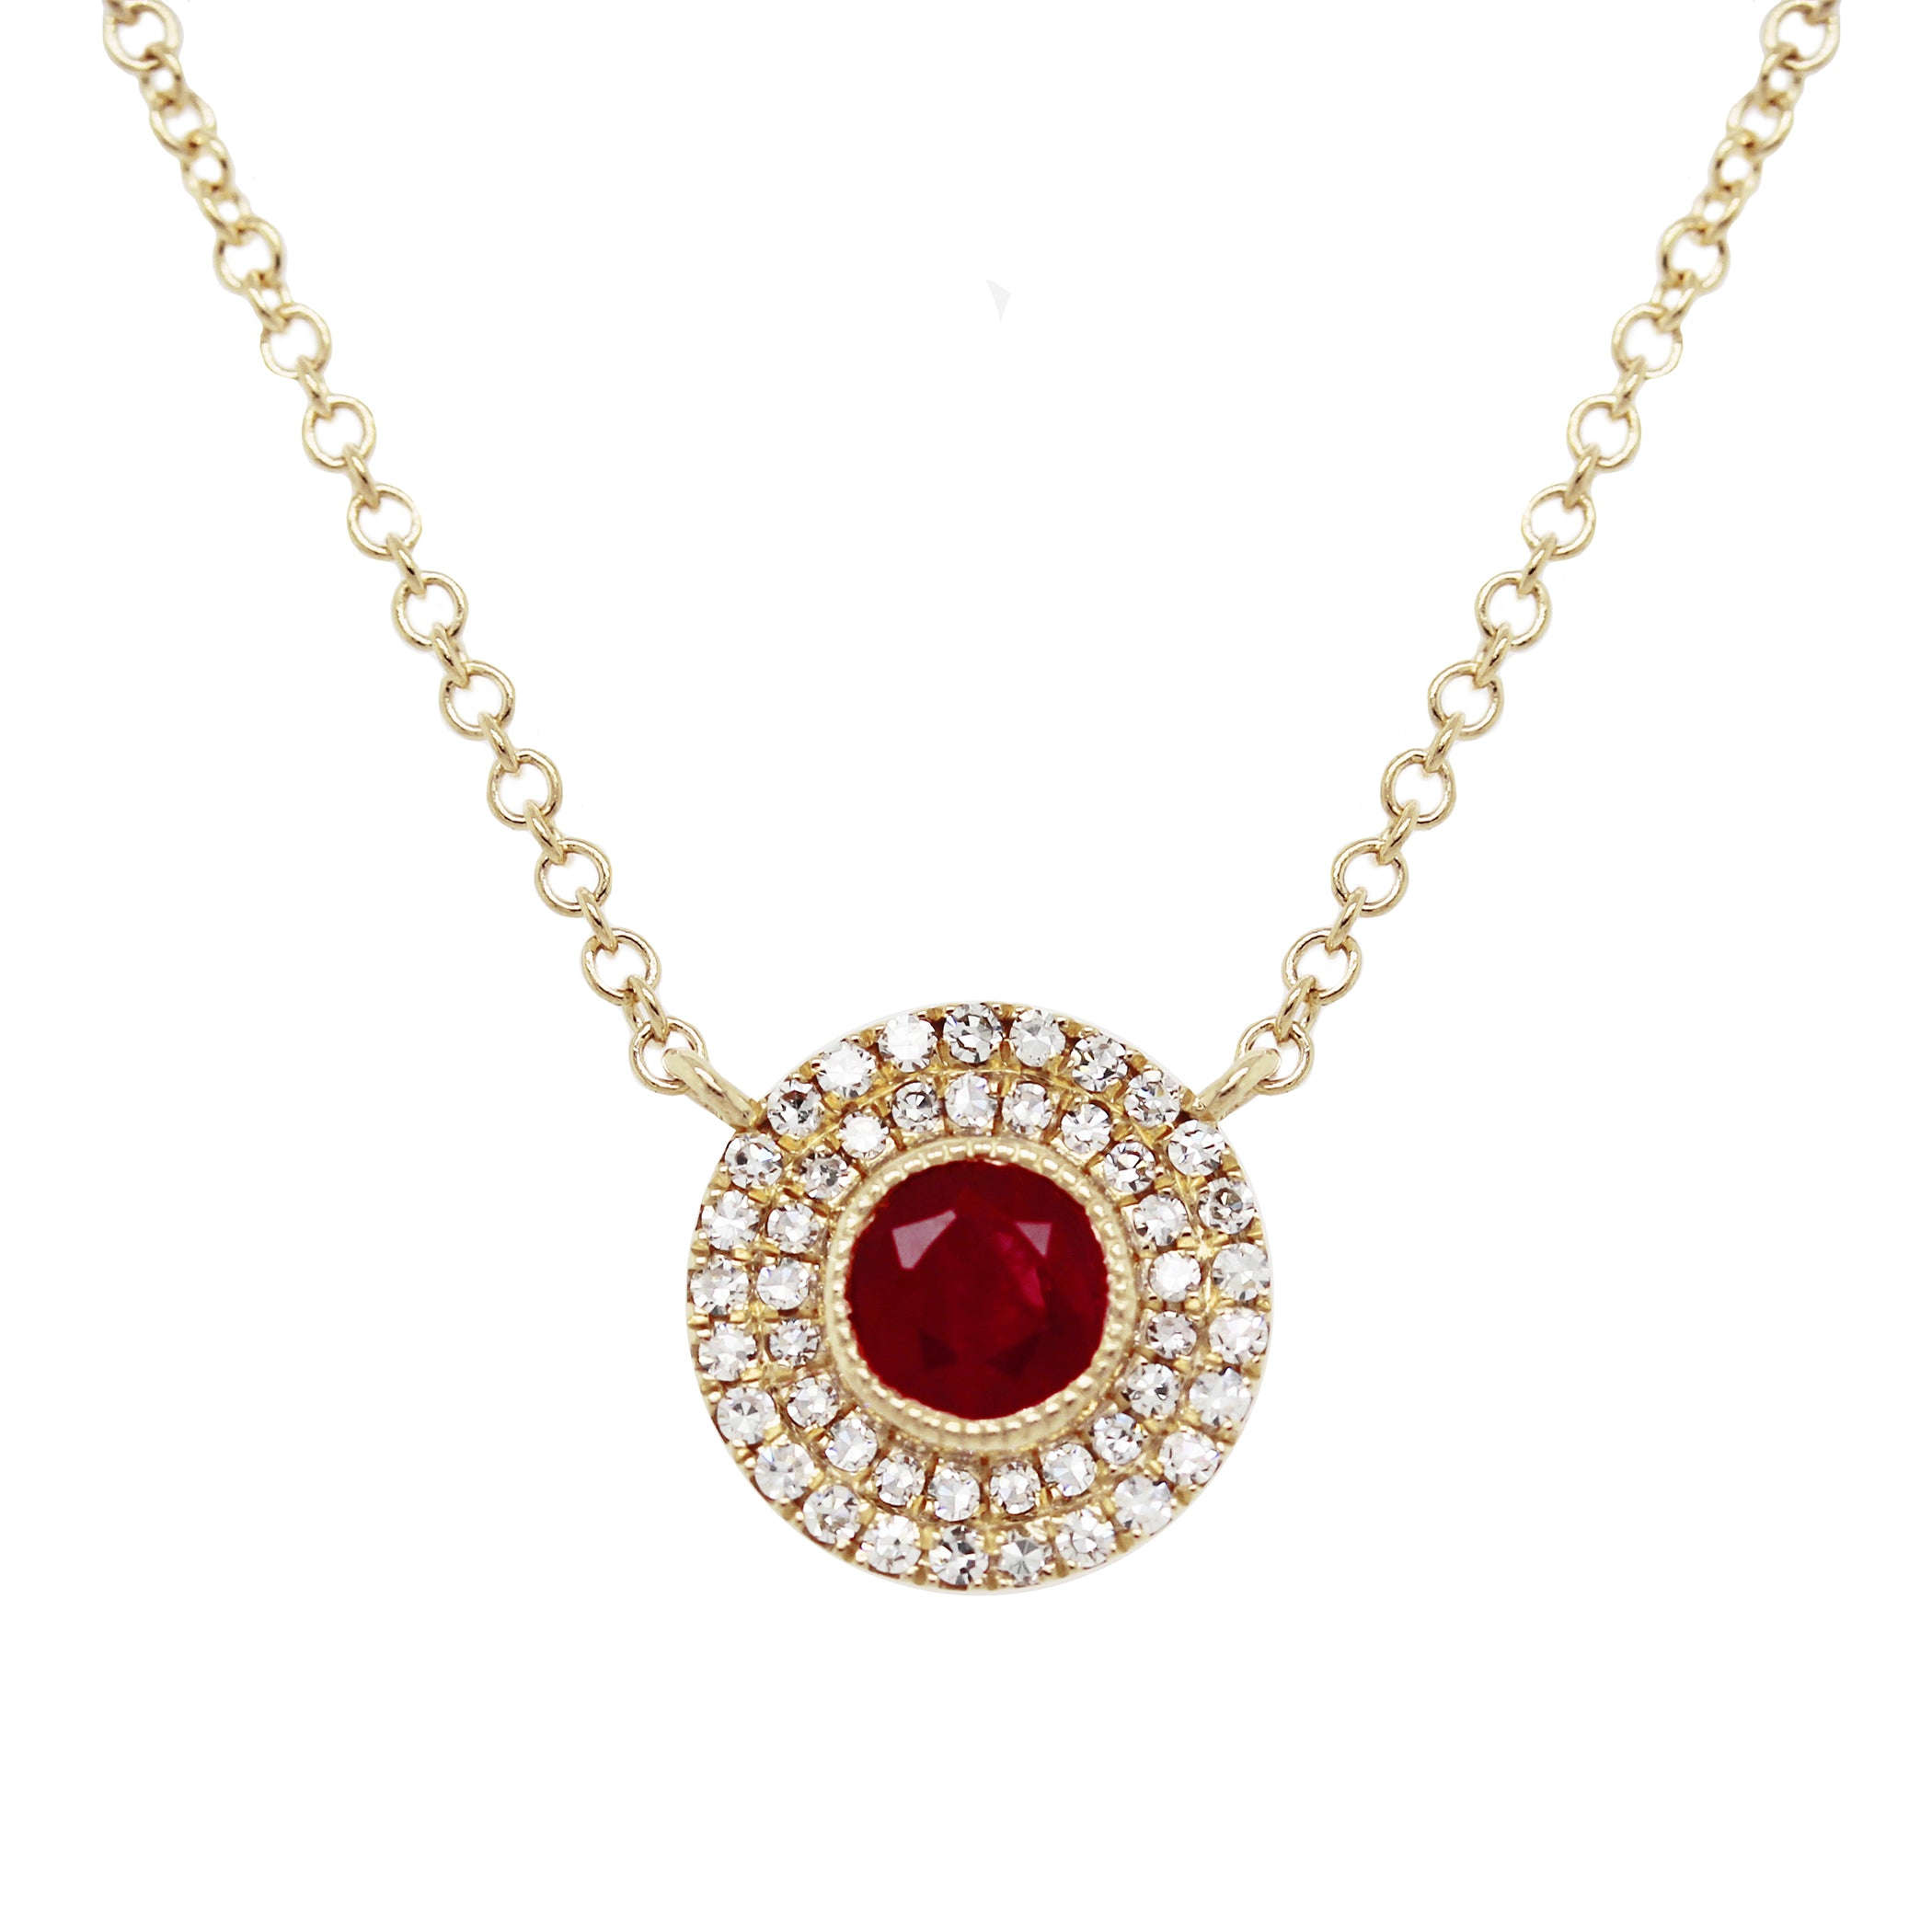 14K ROUND RUBY WITH DOUBLE DIAMOND PAVE HALO NECKLACE